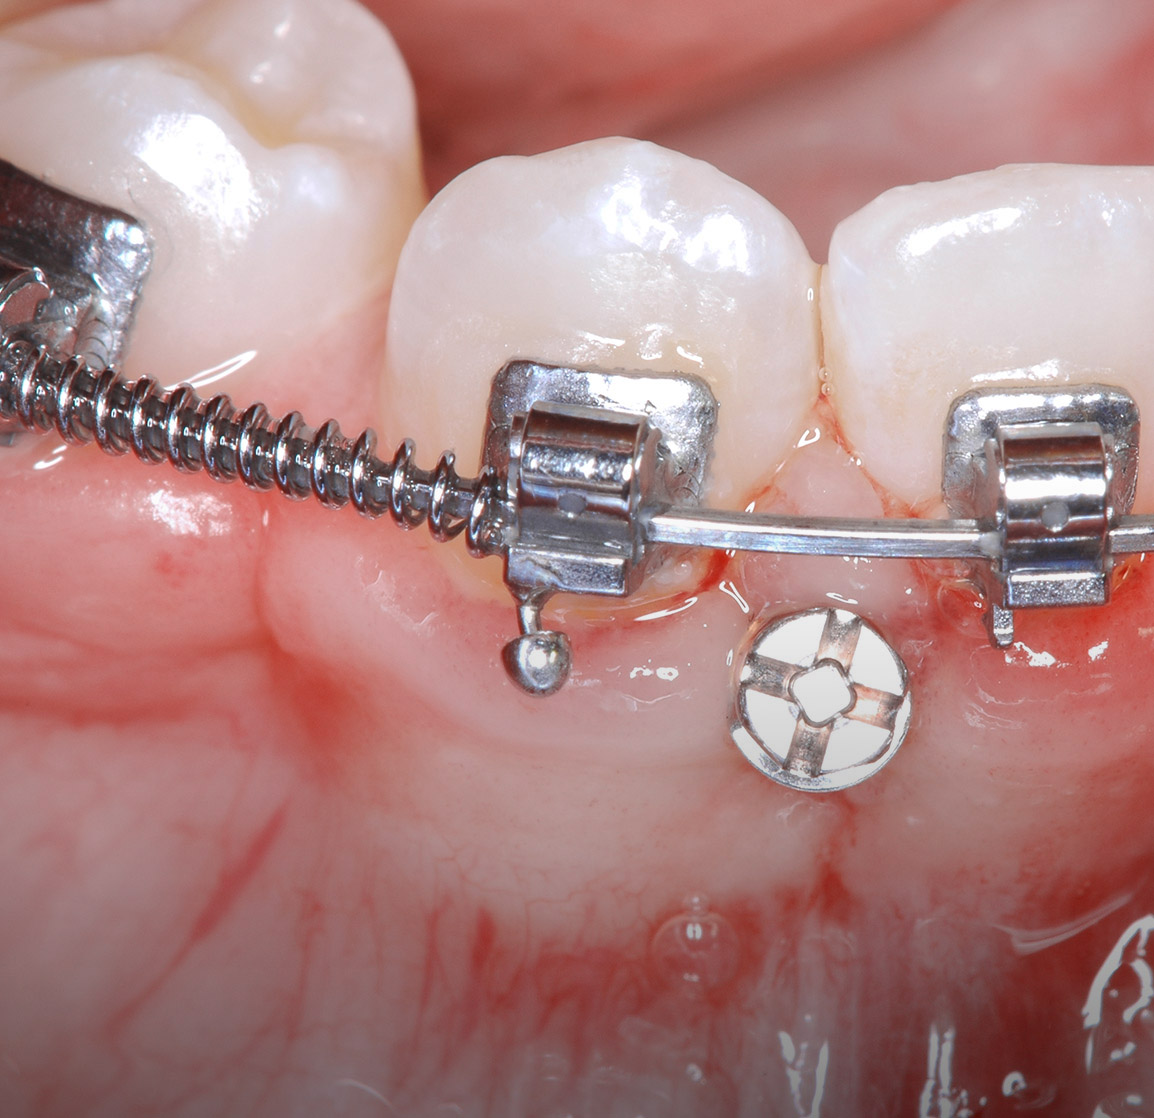 mini implants orthodontiques